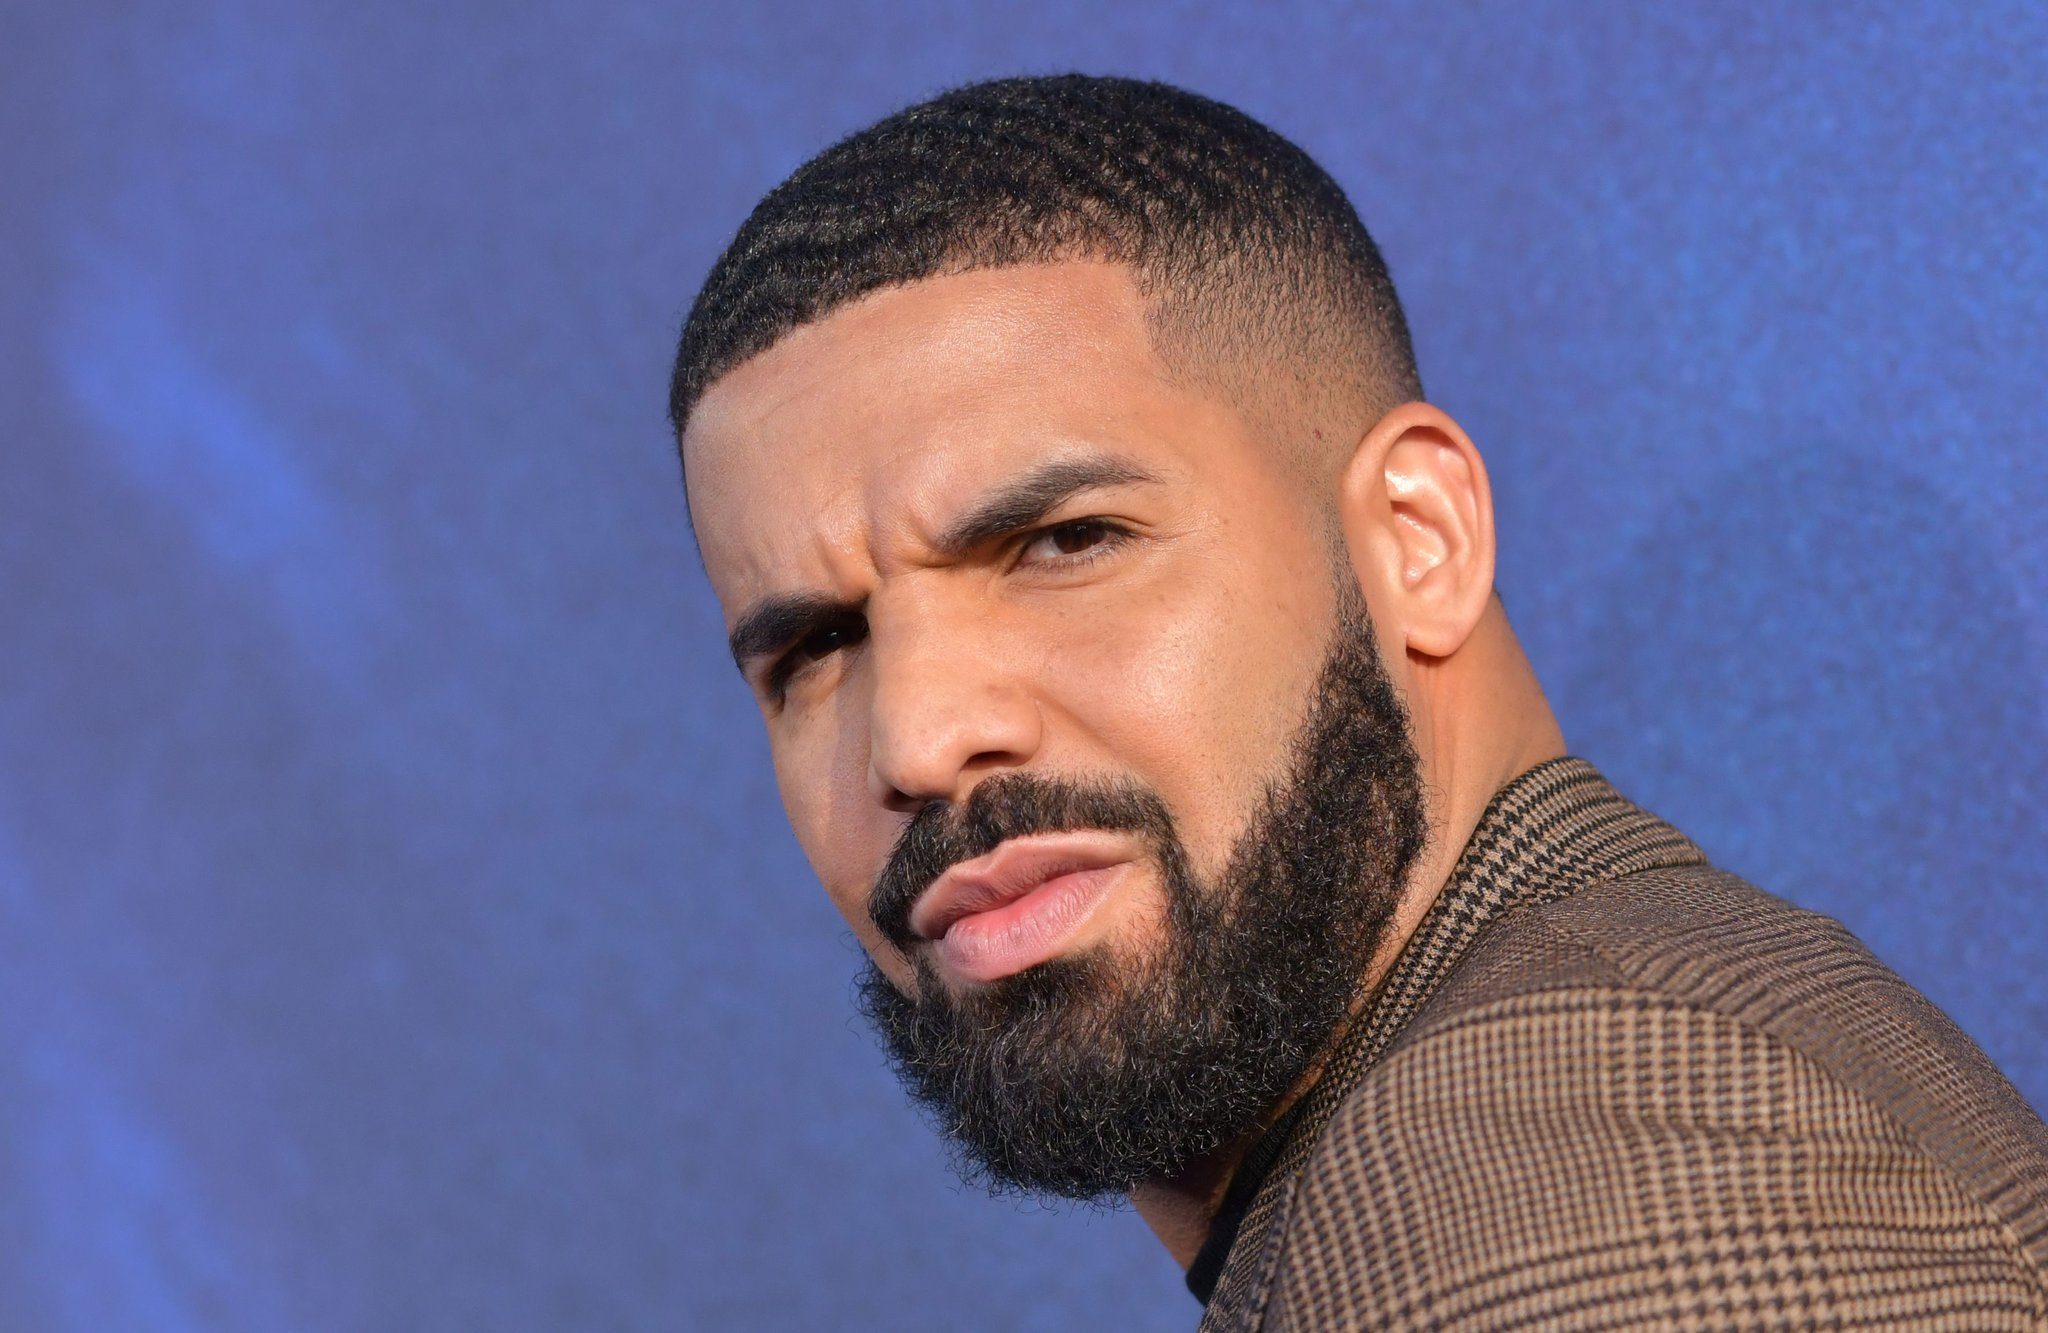 Drake Is Flexing His Muscles For The 'Gram At The Gym - Check Him Out In The Photo